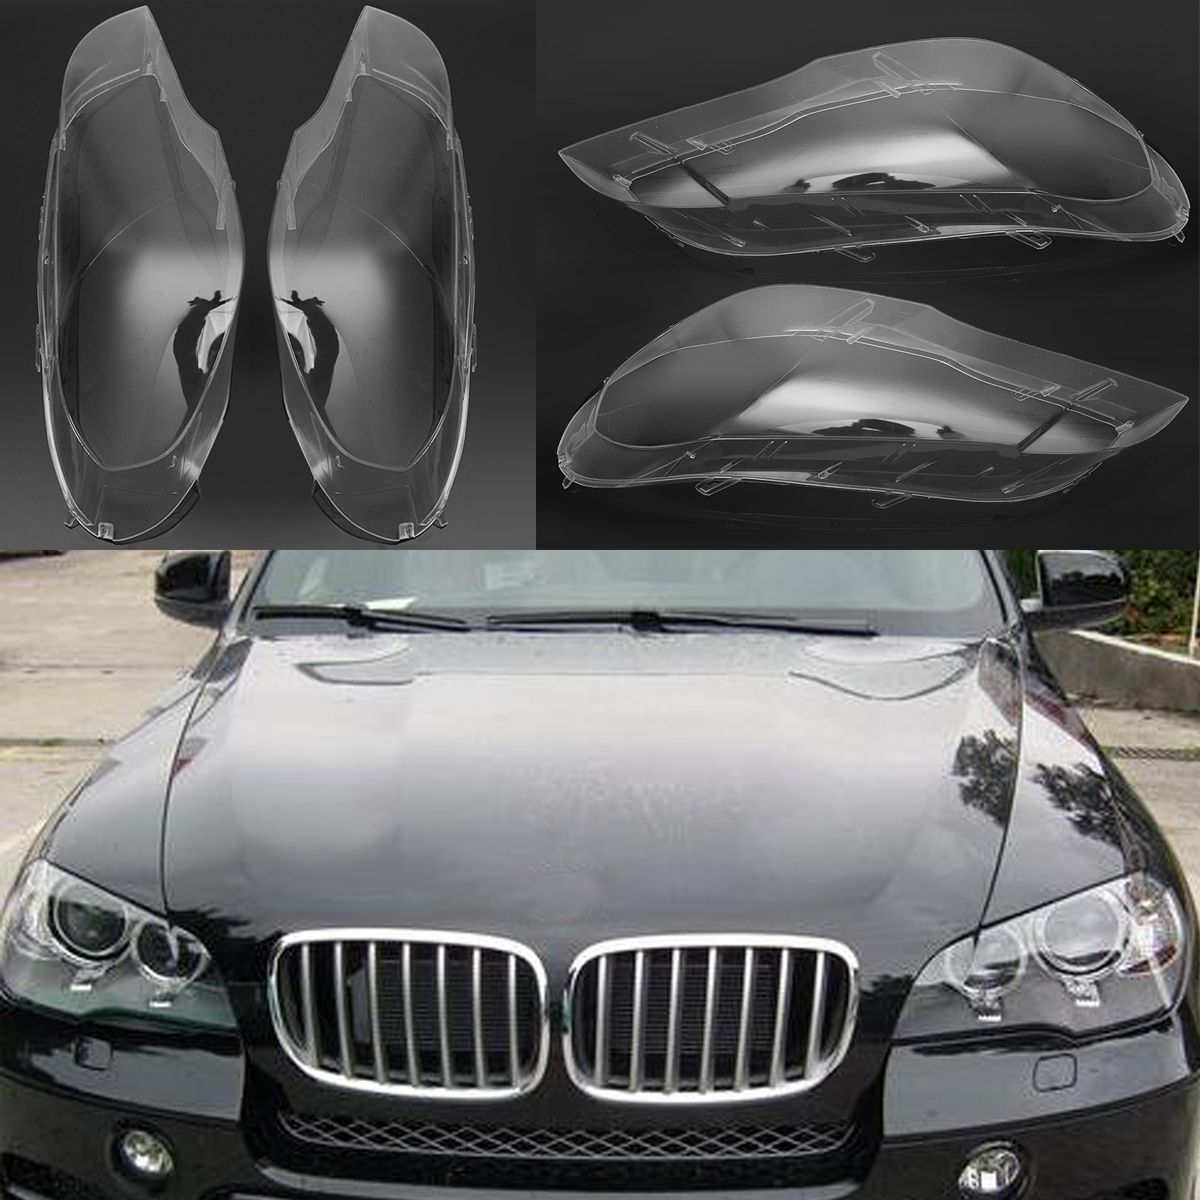 2Pcs Car Left &Right Headlamp Shell Headlight Lens Replacement Cover for BMW 2007-2012 X5 E70 Car Lights Headlight Lamp Case